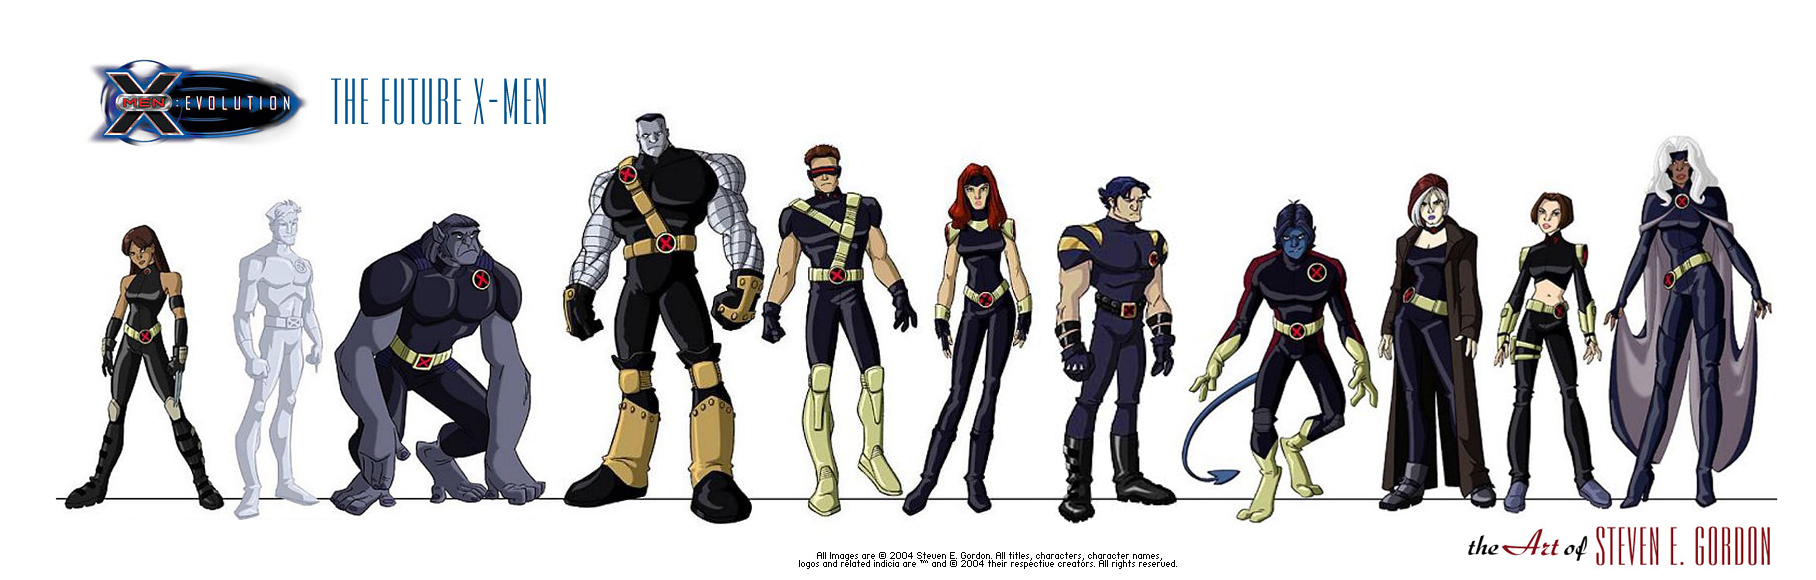 X Men Evolution Characters Profiles The gallery for -->...